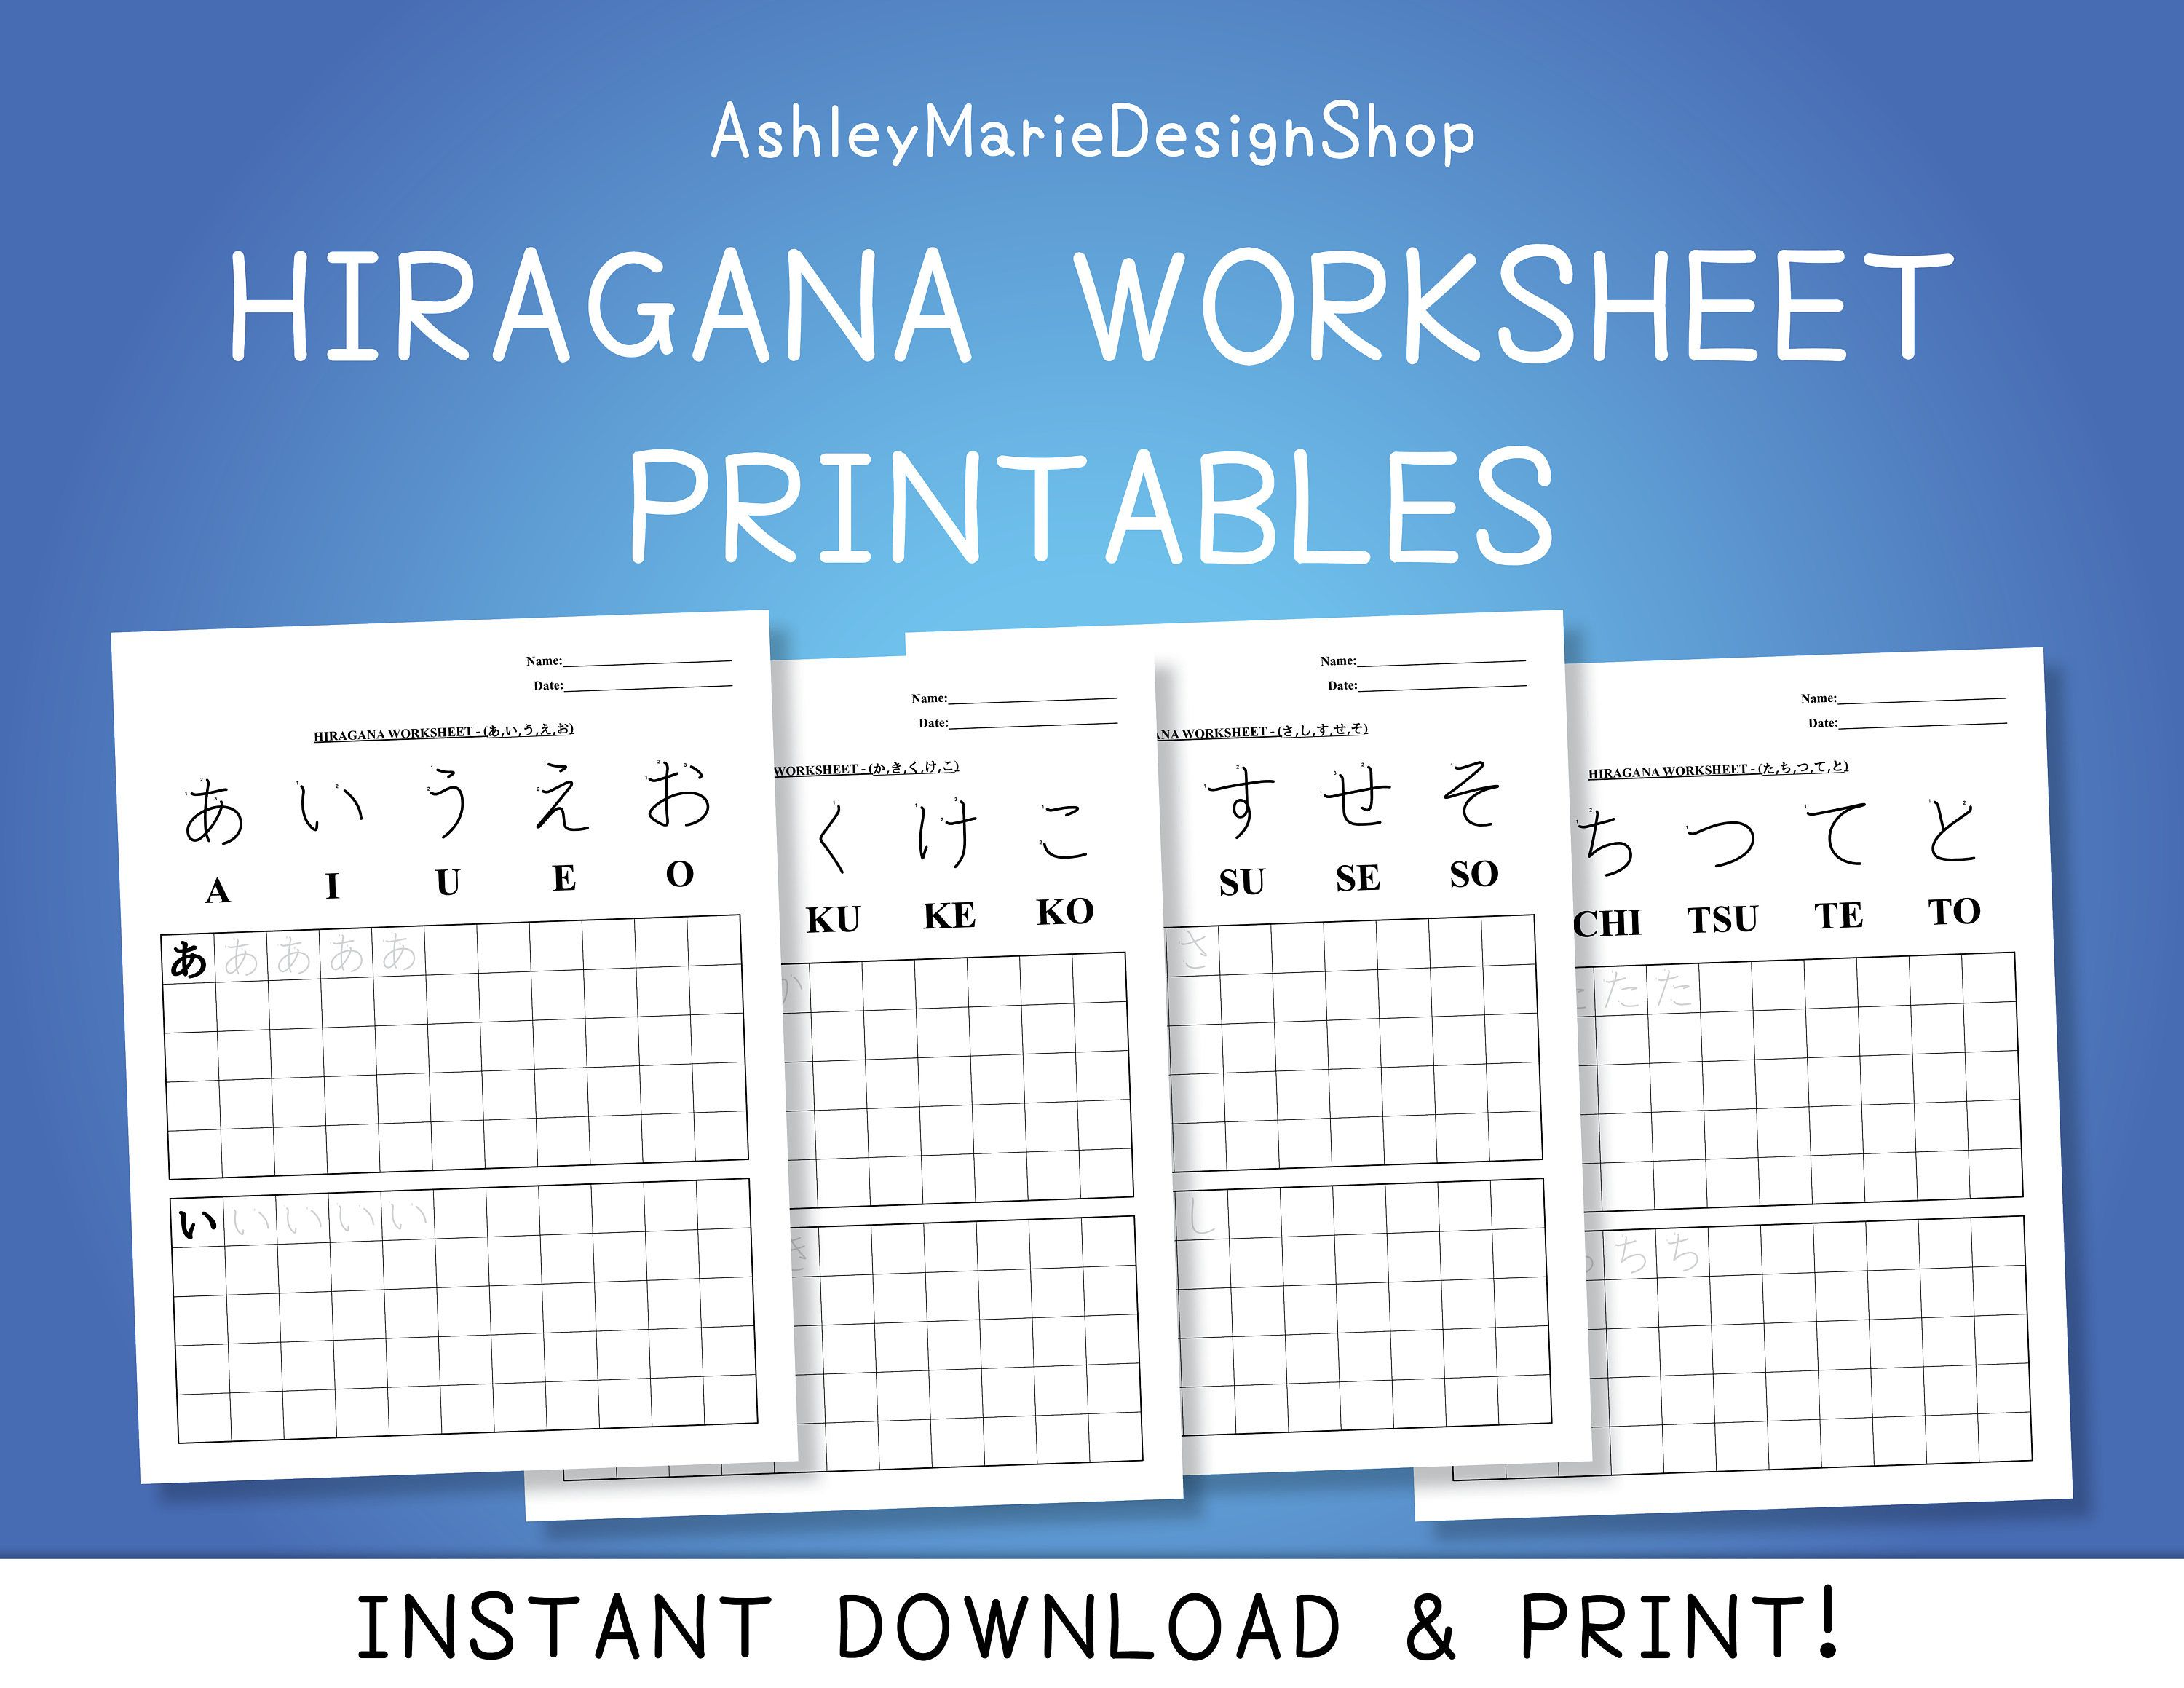 worksheet Printable Hiragana Worksheets japanese hiragana worksheet printables instant download learn download